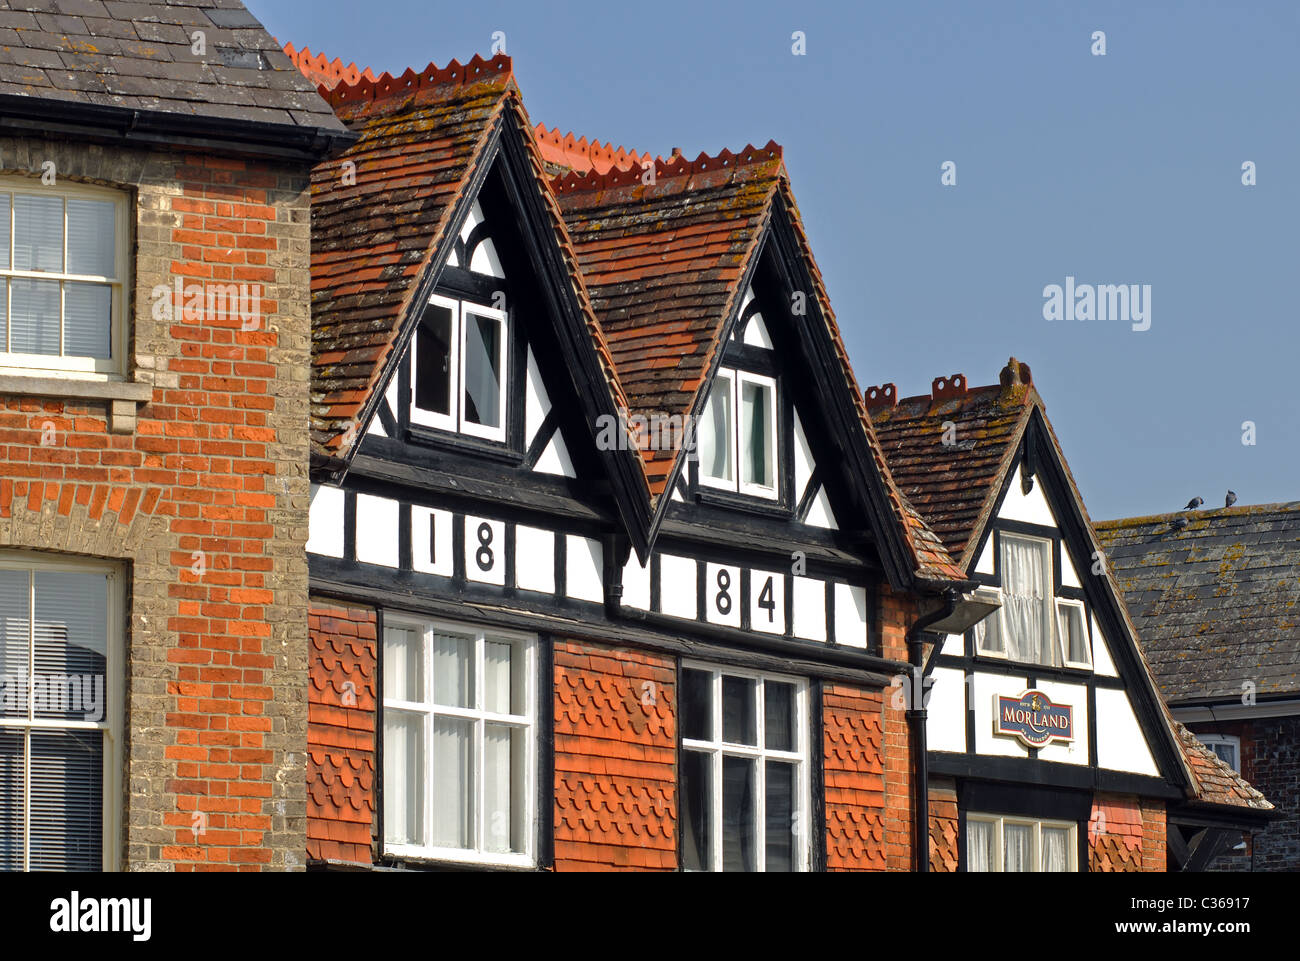 Buildings in Market Place, Wantage, Oxfordshire, England, UK - Stock Image